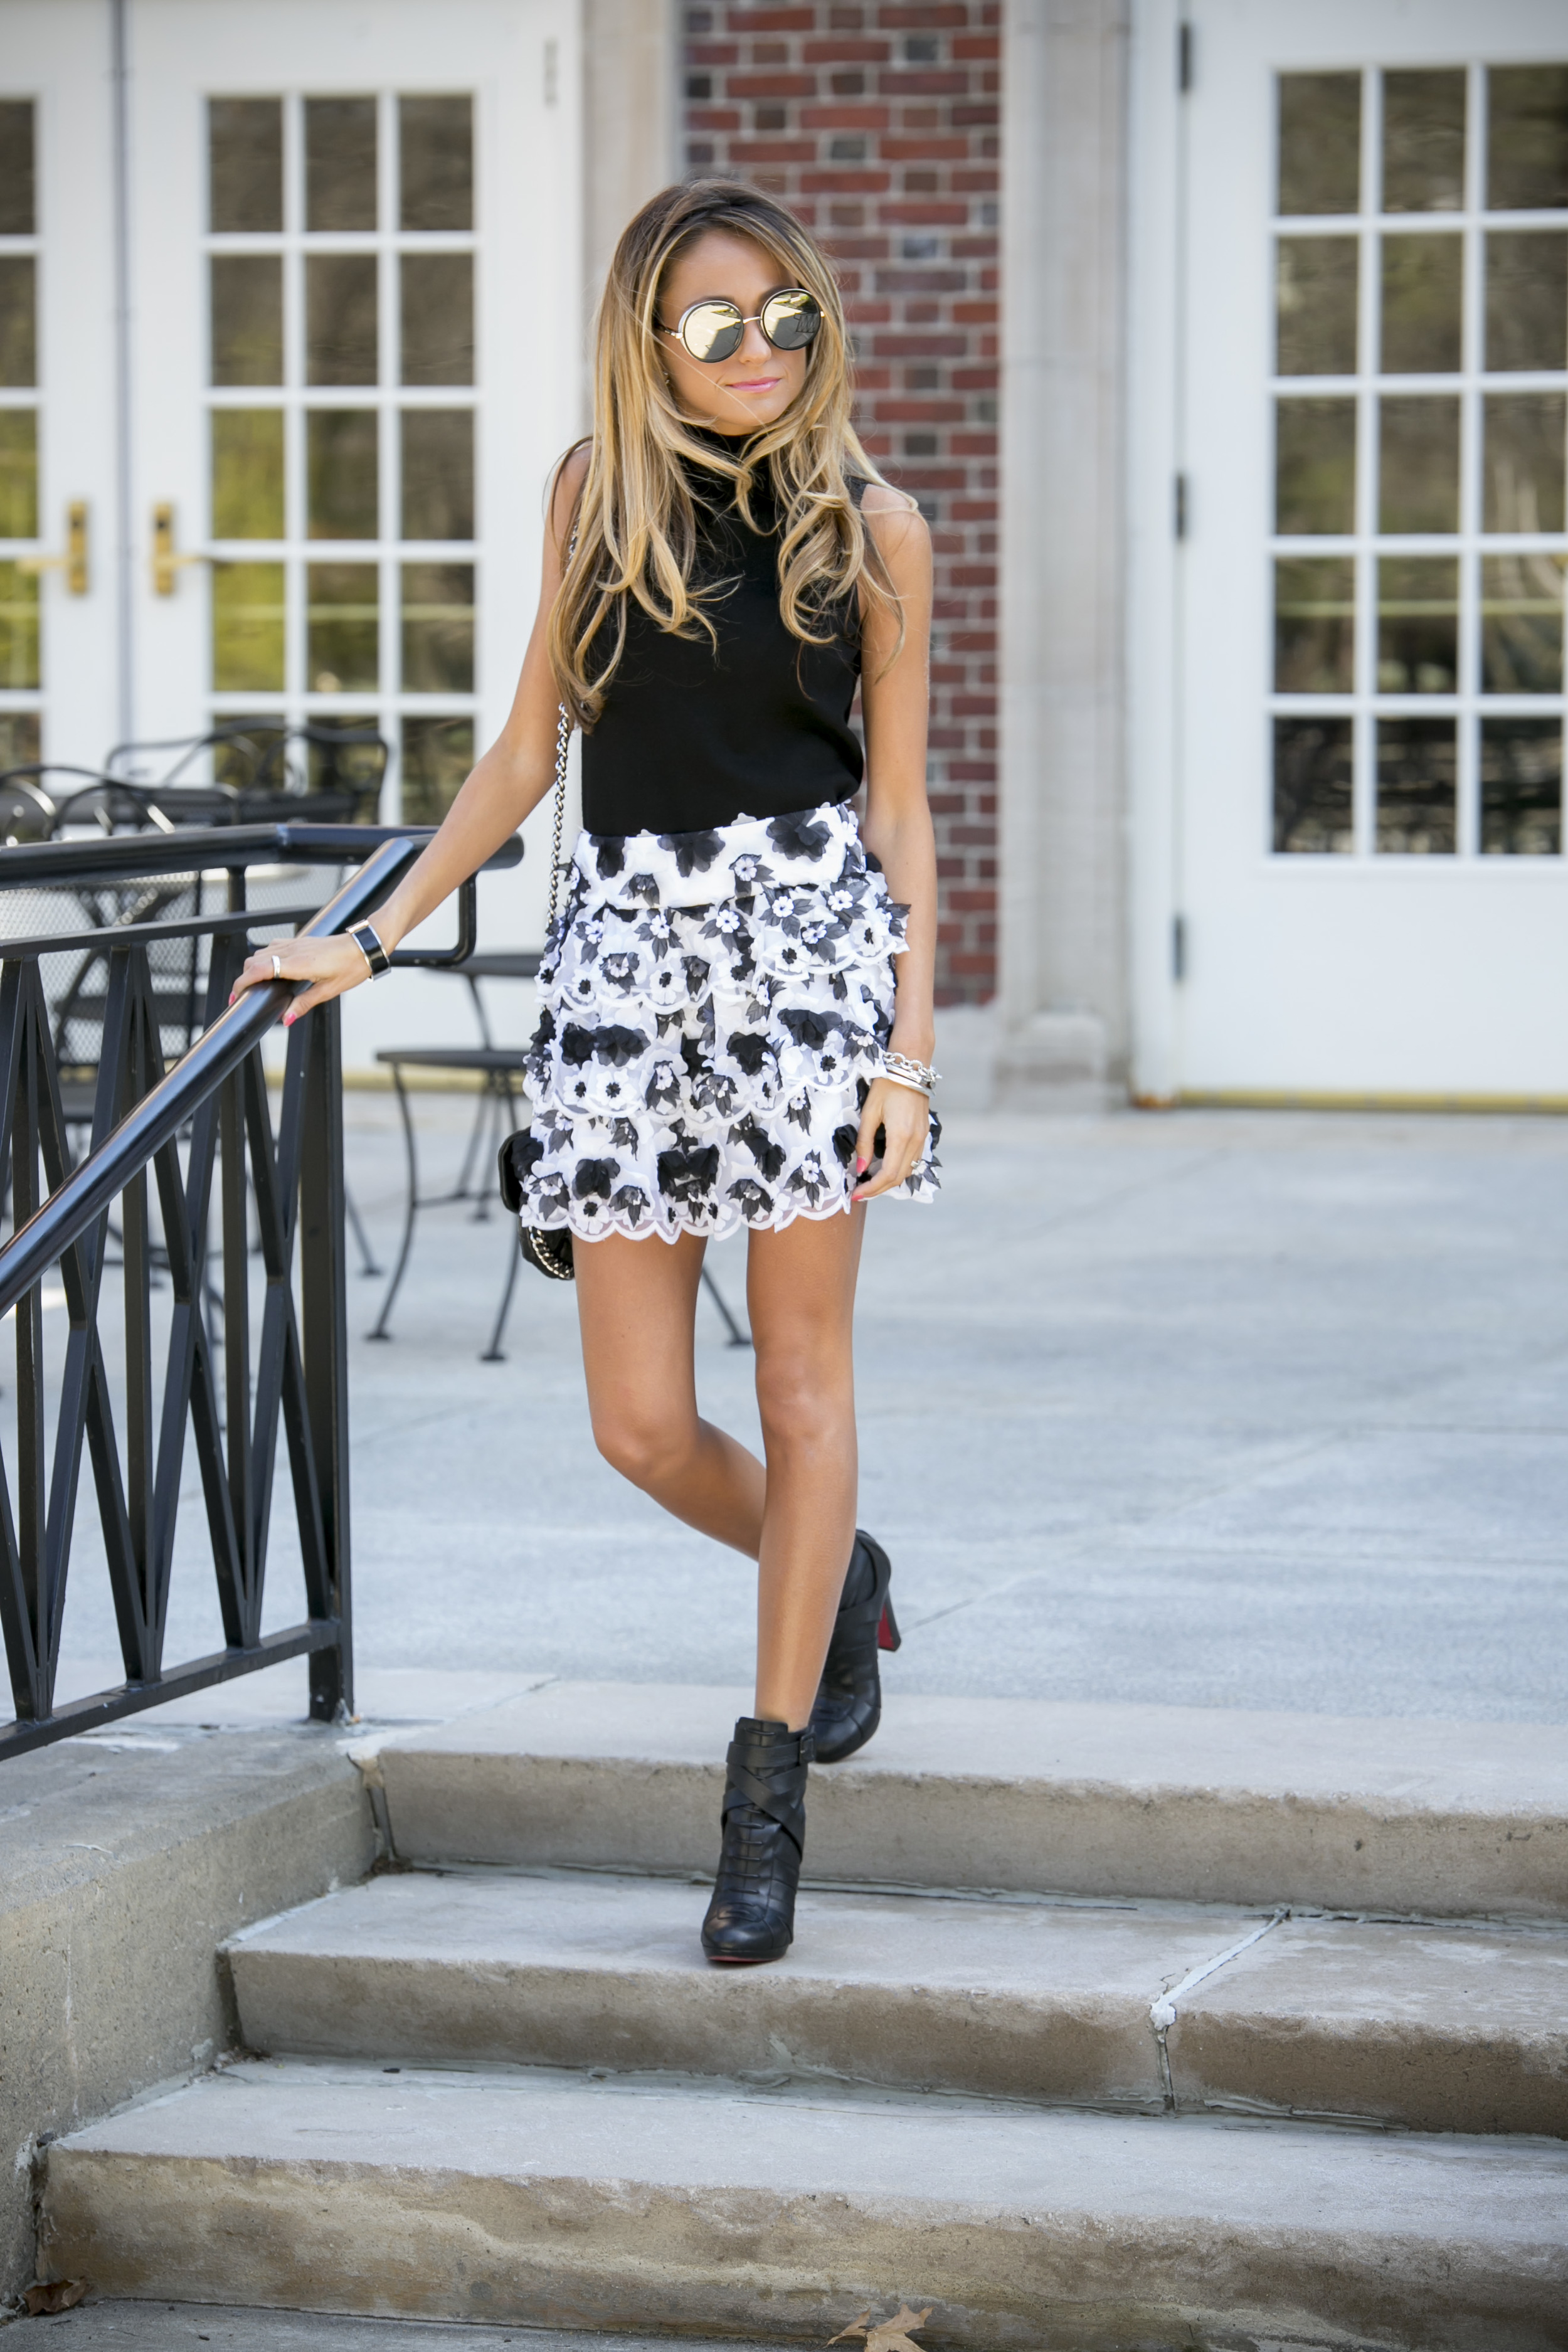 Milly knit top, Alice and Olivia skirt, and Christian Louboutin boots worn by Lauren Recchia for North of Manhattan fashion blog